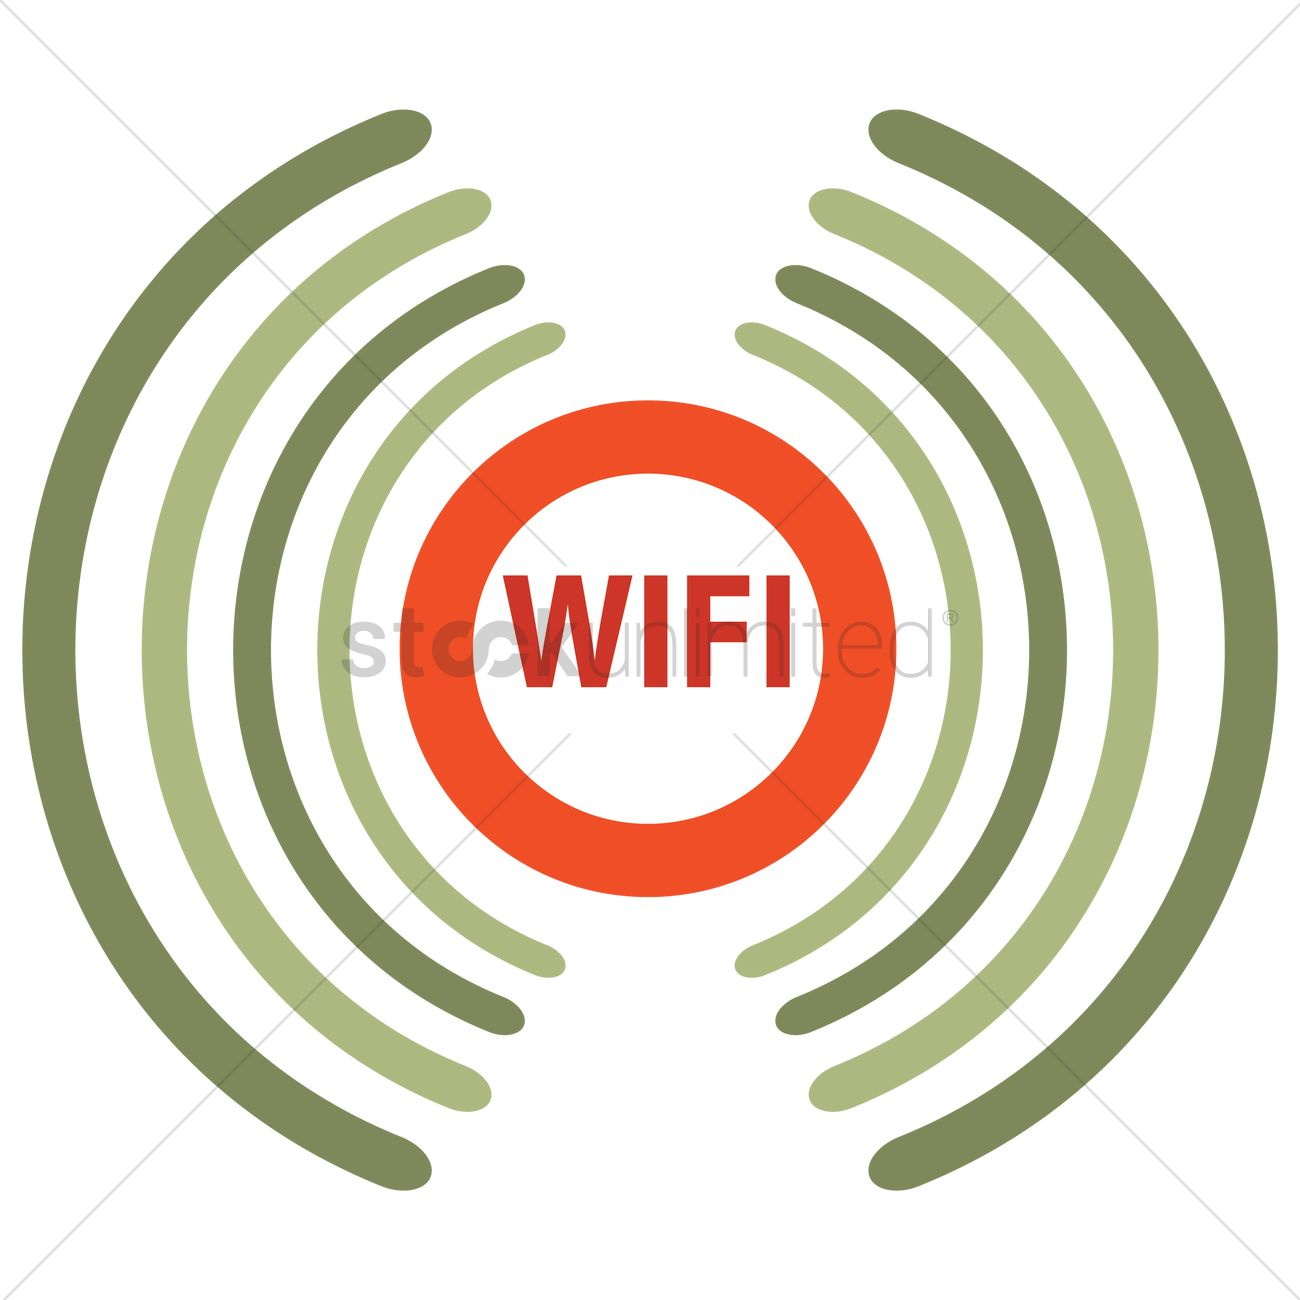 Wireless Network Symbol Vector Image 1270296 Stockunlimited